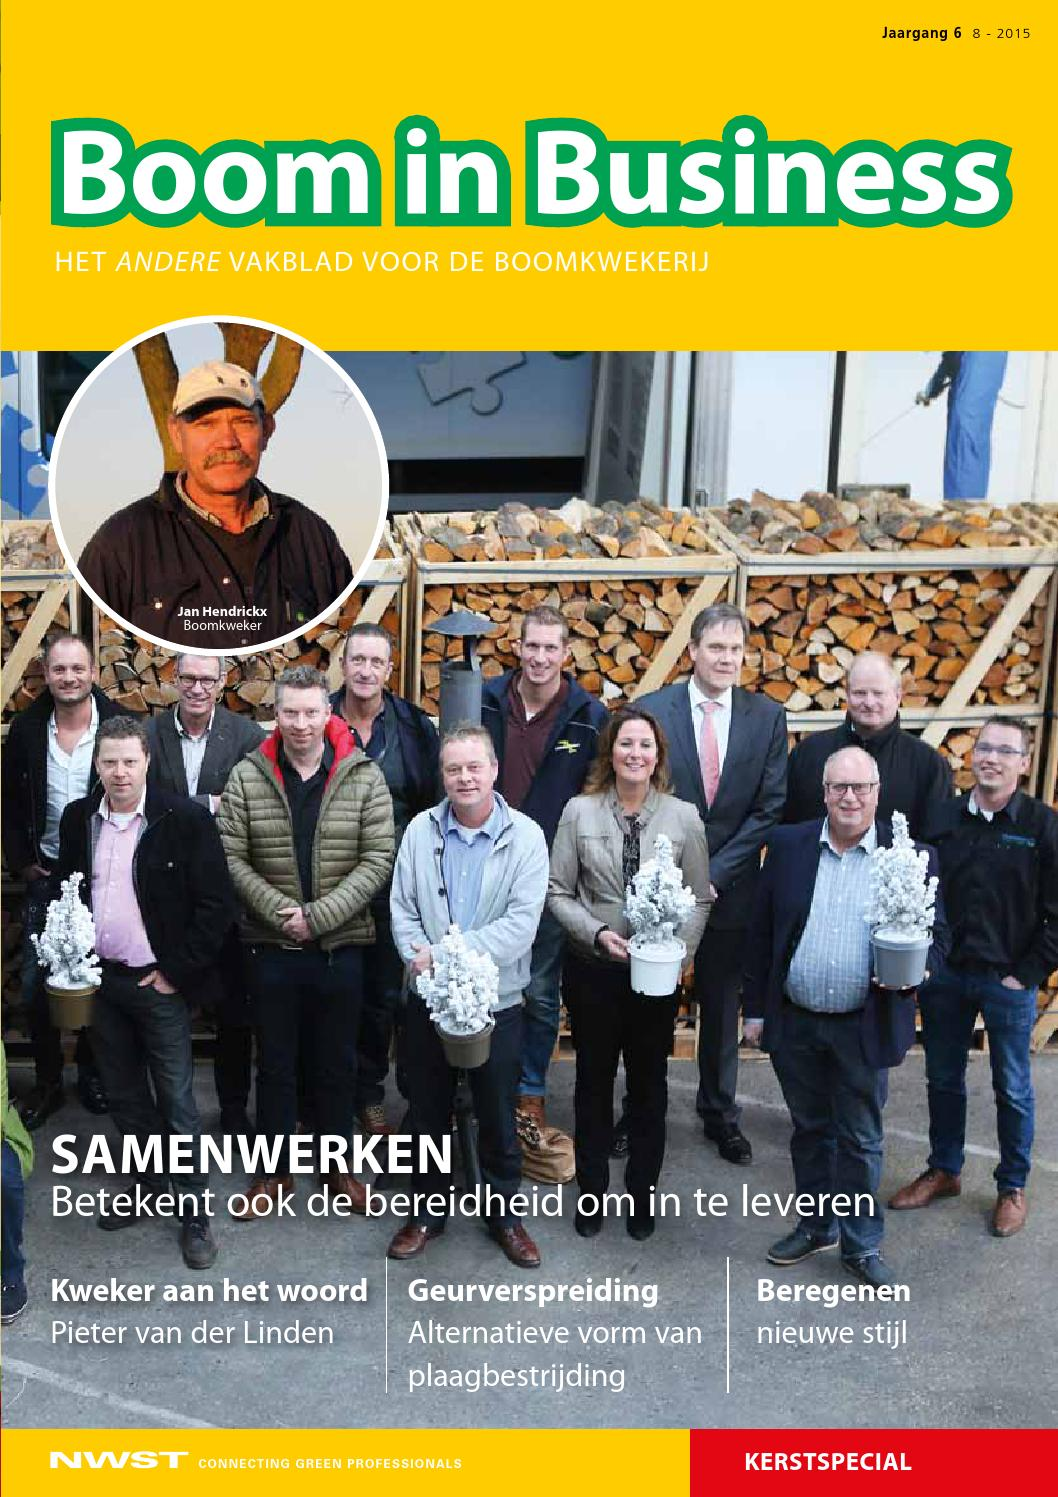 Boom in Business 7 2015 by NWST NeWSTories - issuu